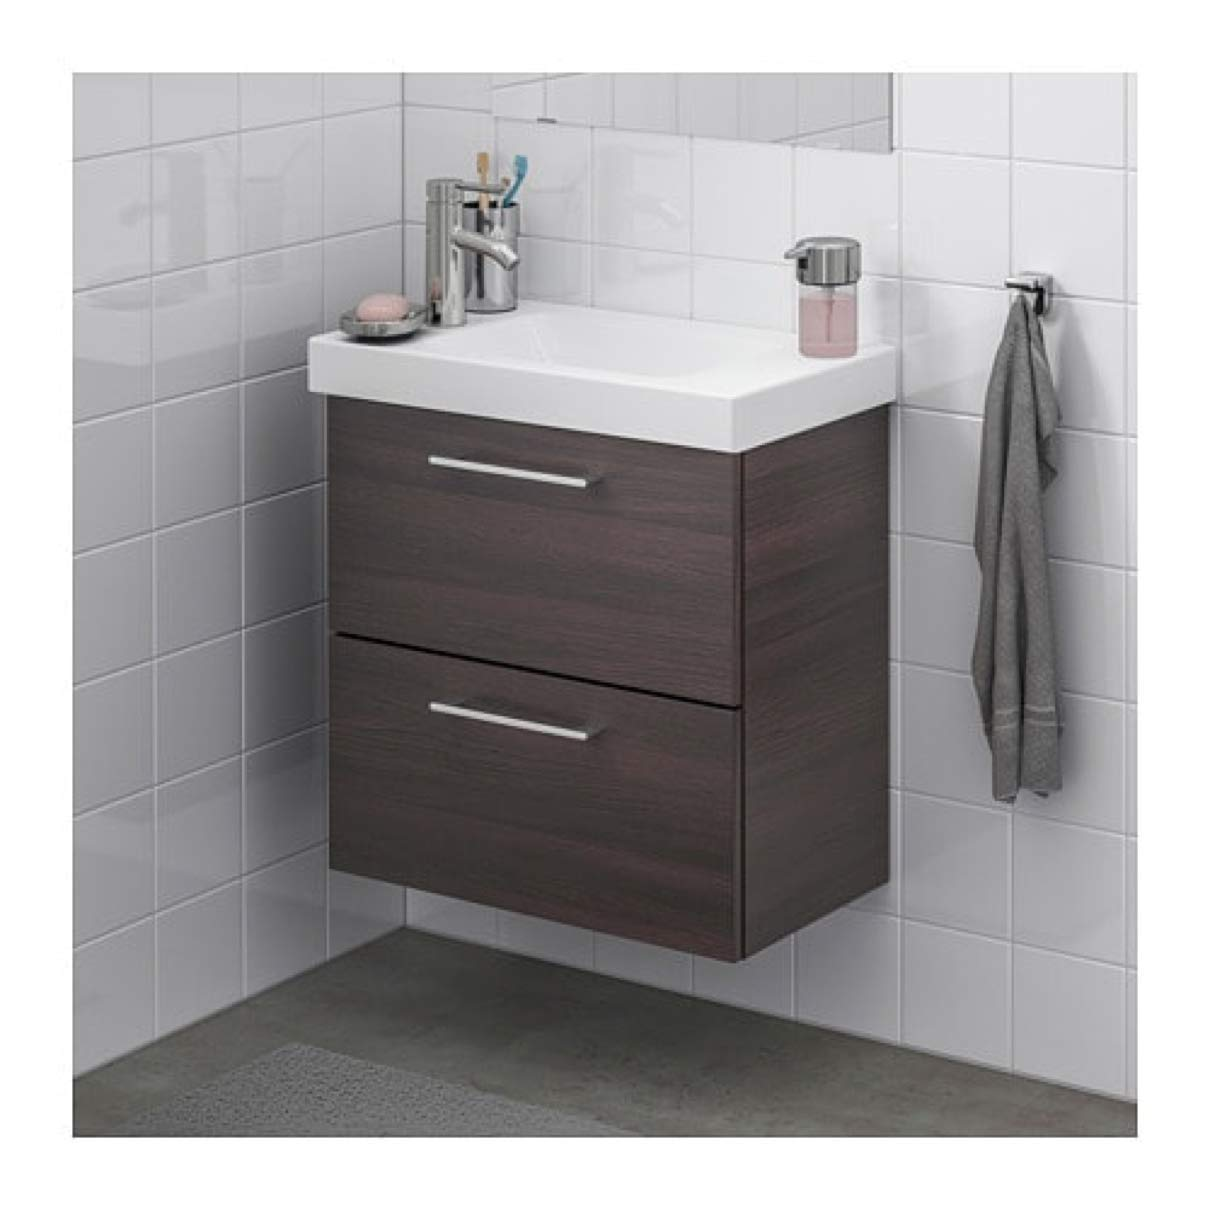 best website 06d39 5aa7d Amazon.com: IKEA Godmorgon/Hagaviken Sink Cabinet with 2 ...